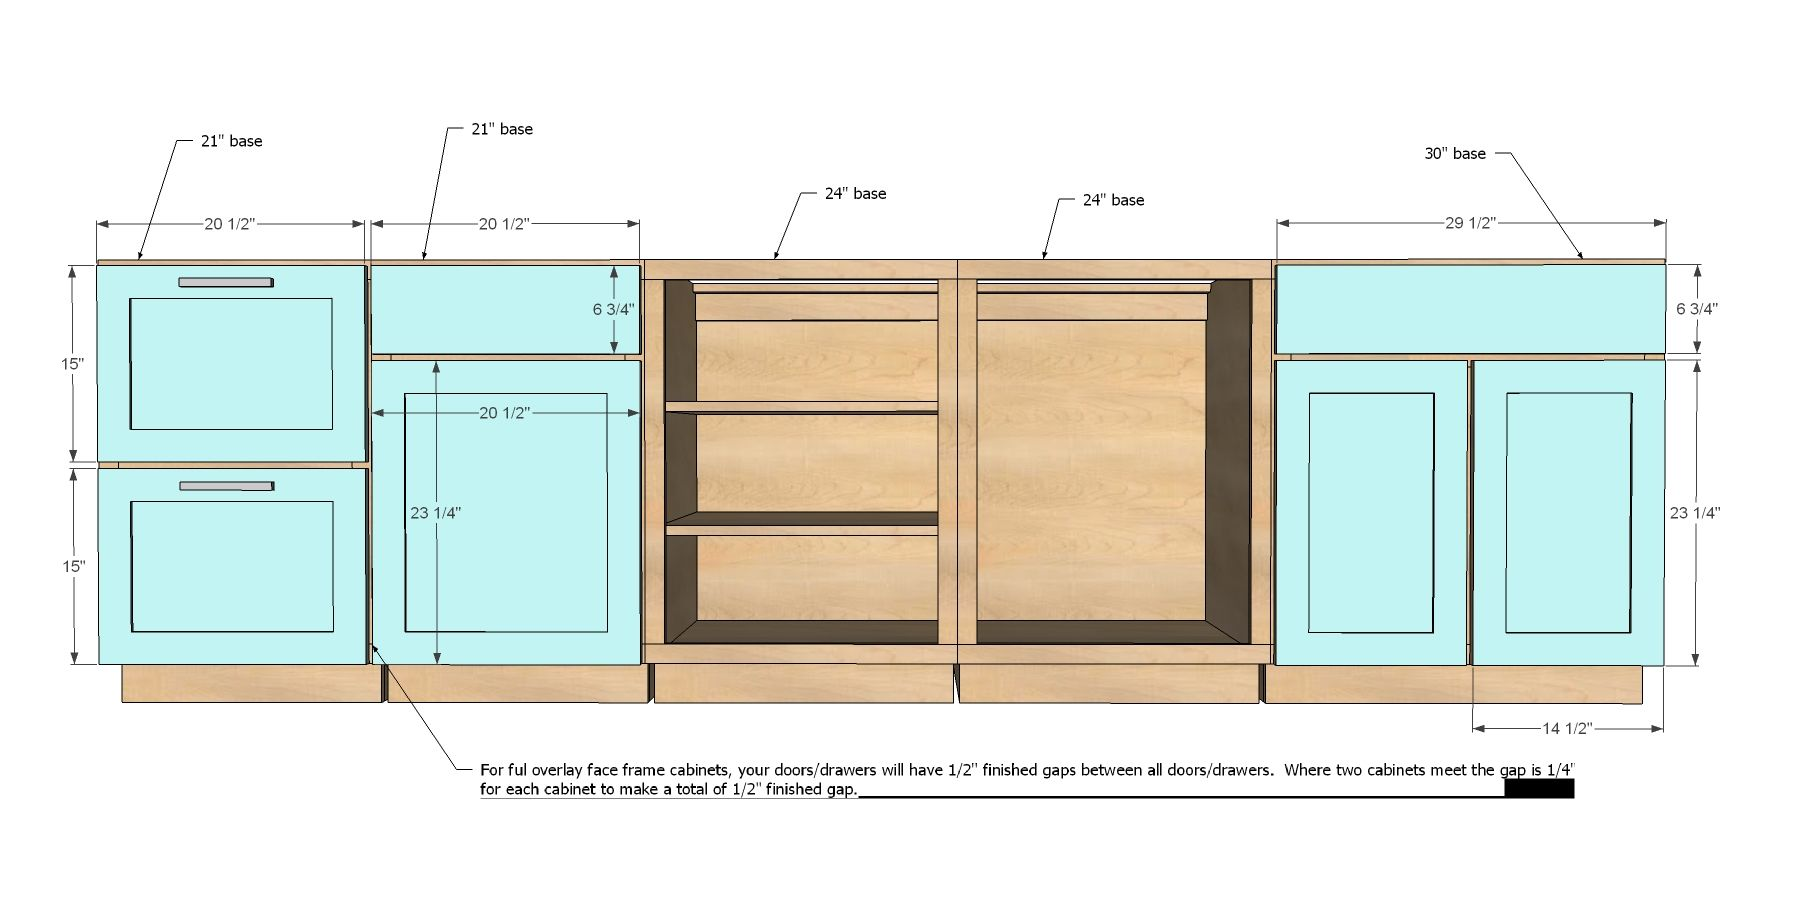 Face Frame Base Kitchen Cabinet Carcass Kitchen Cabinets Height Kitchen Base Cabinets Kitchen Cabinet Plans